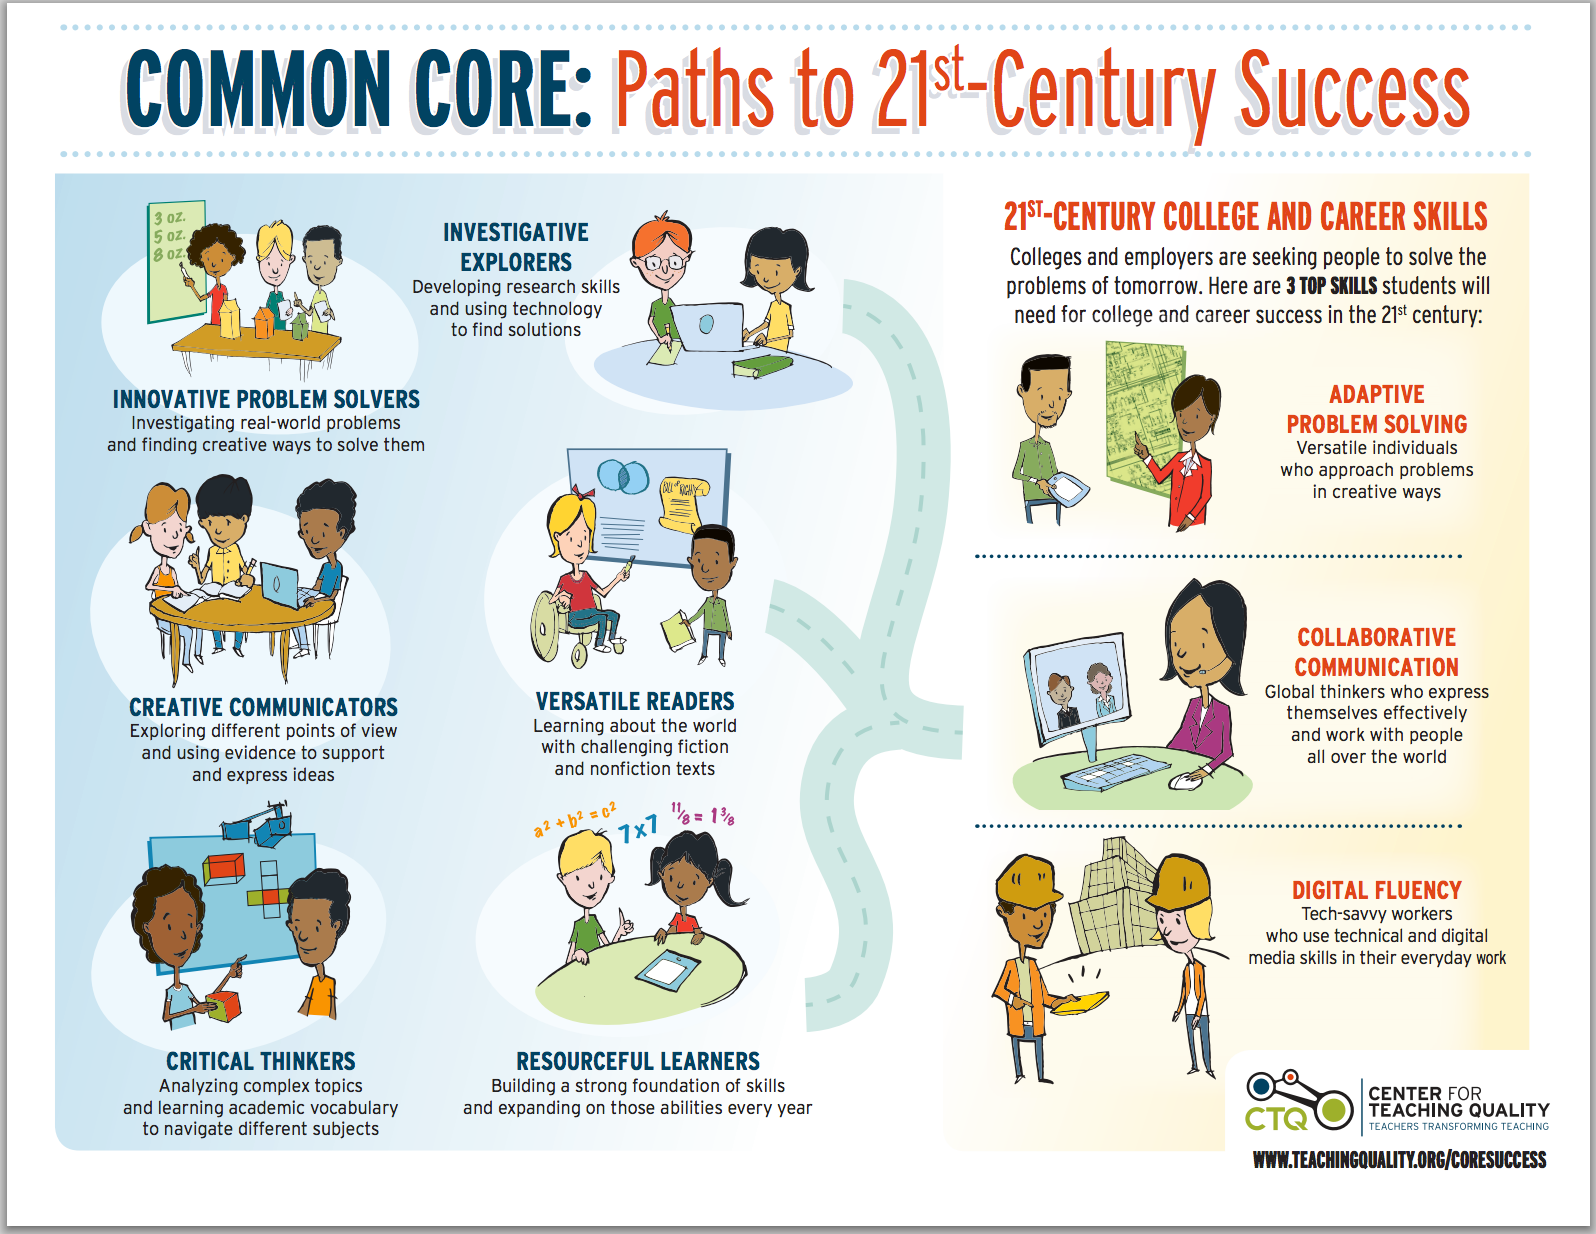 key learning skills that lead to st century success key learning skills that lead to 21st century success able poster educational technology and mobile learning